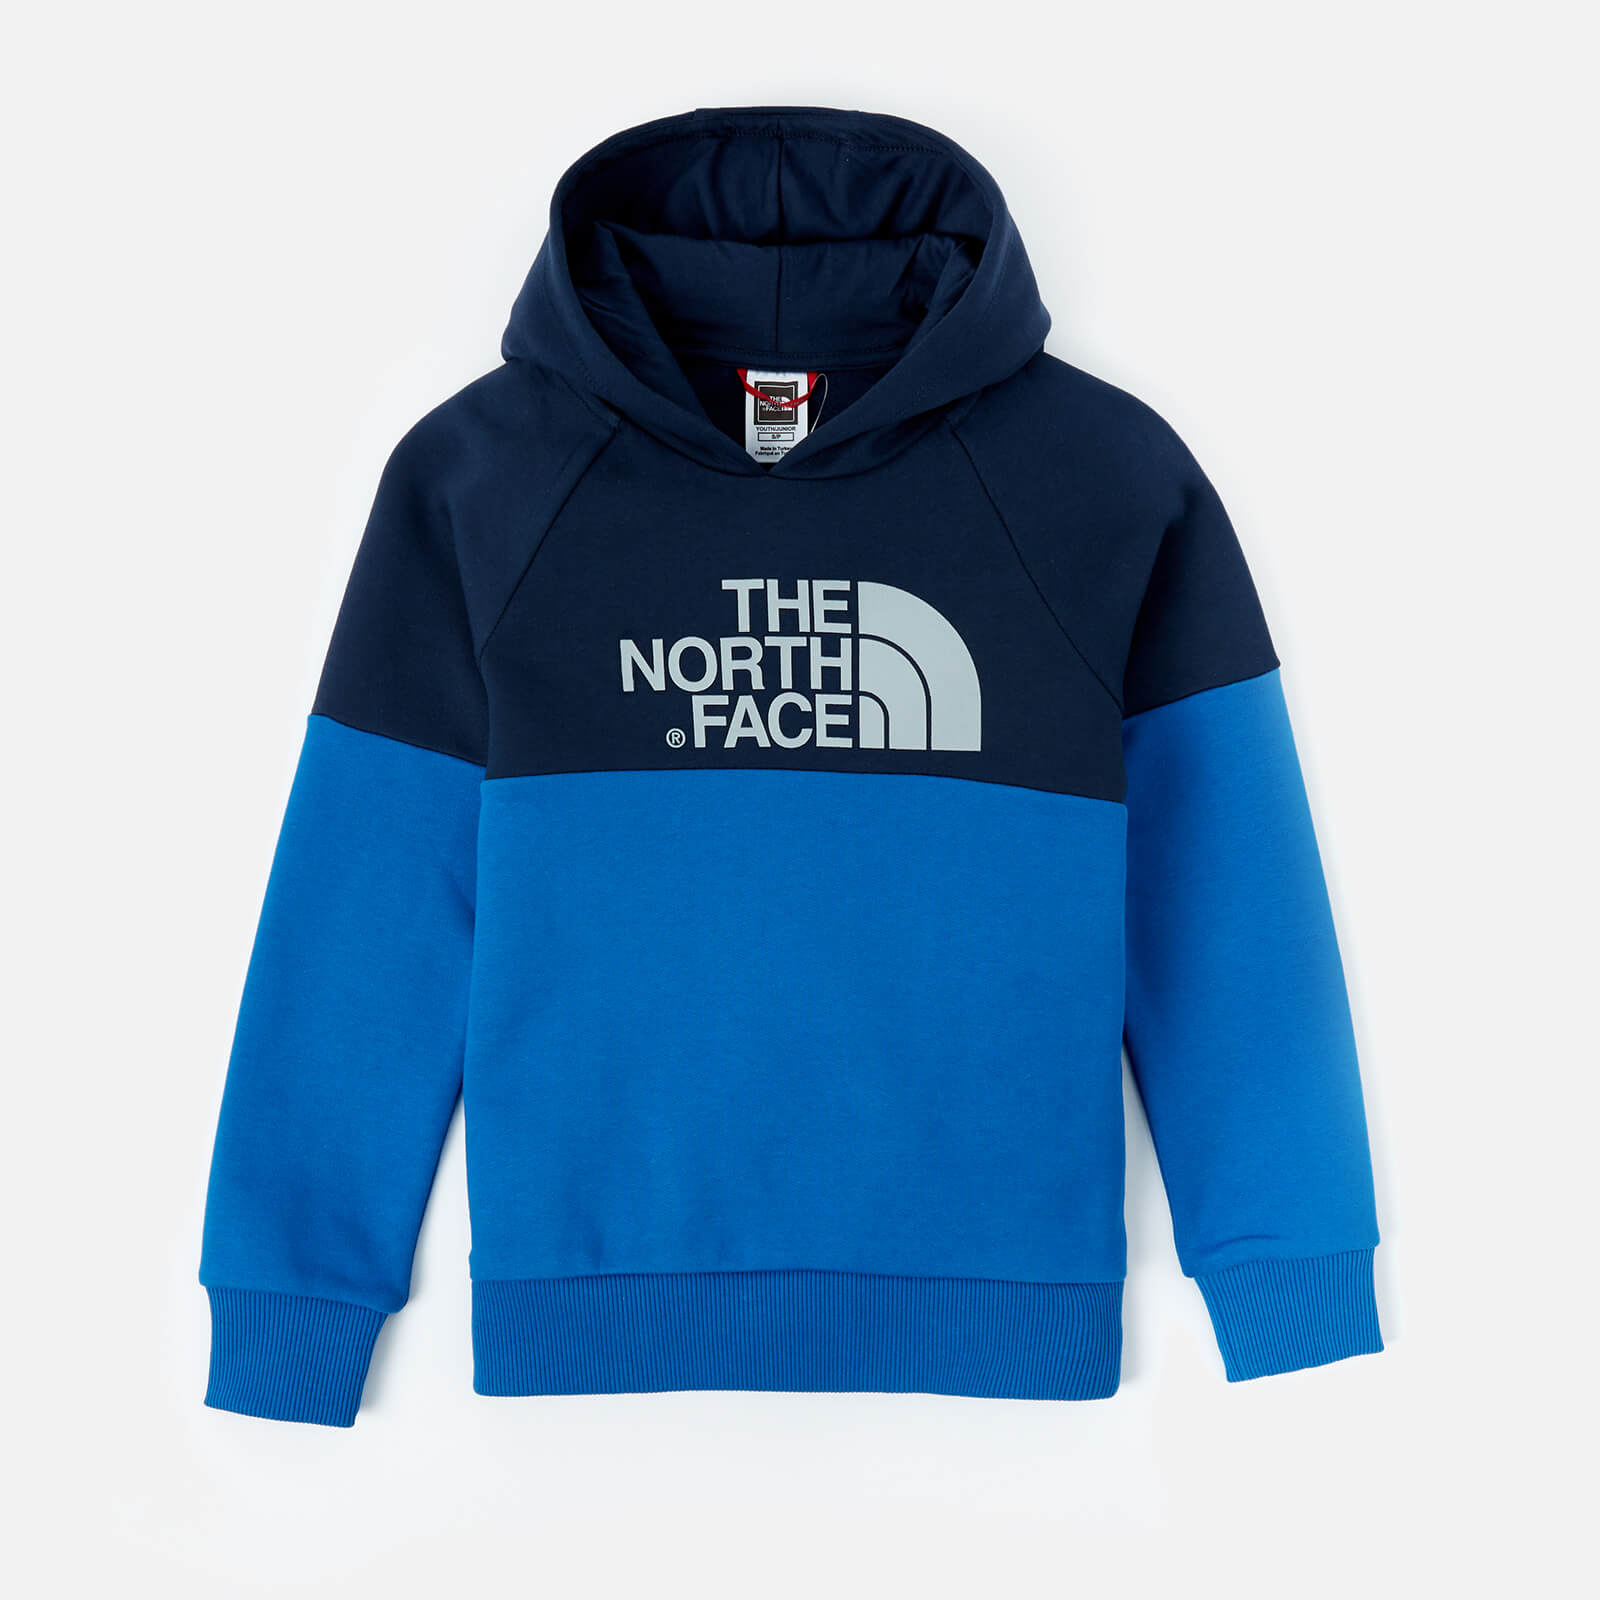 75edad66708a The North Face Boys  Youth Drew Peak Raglan Hoody - Cosmic Blue Clothing